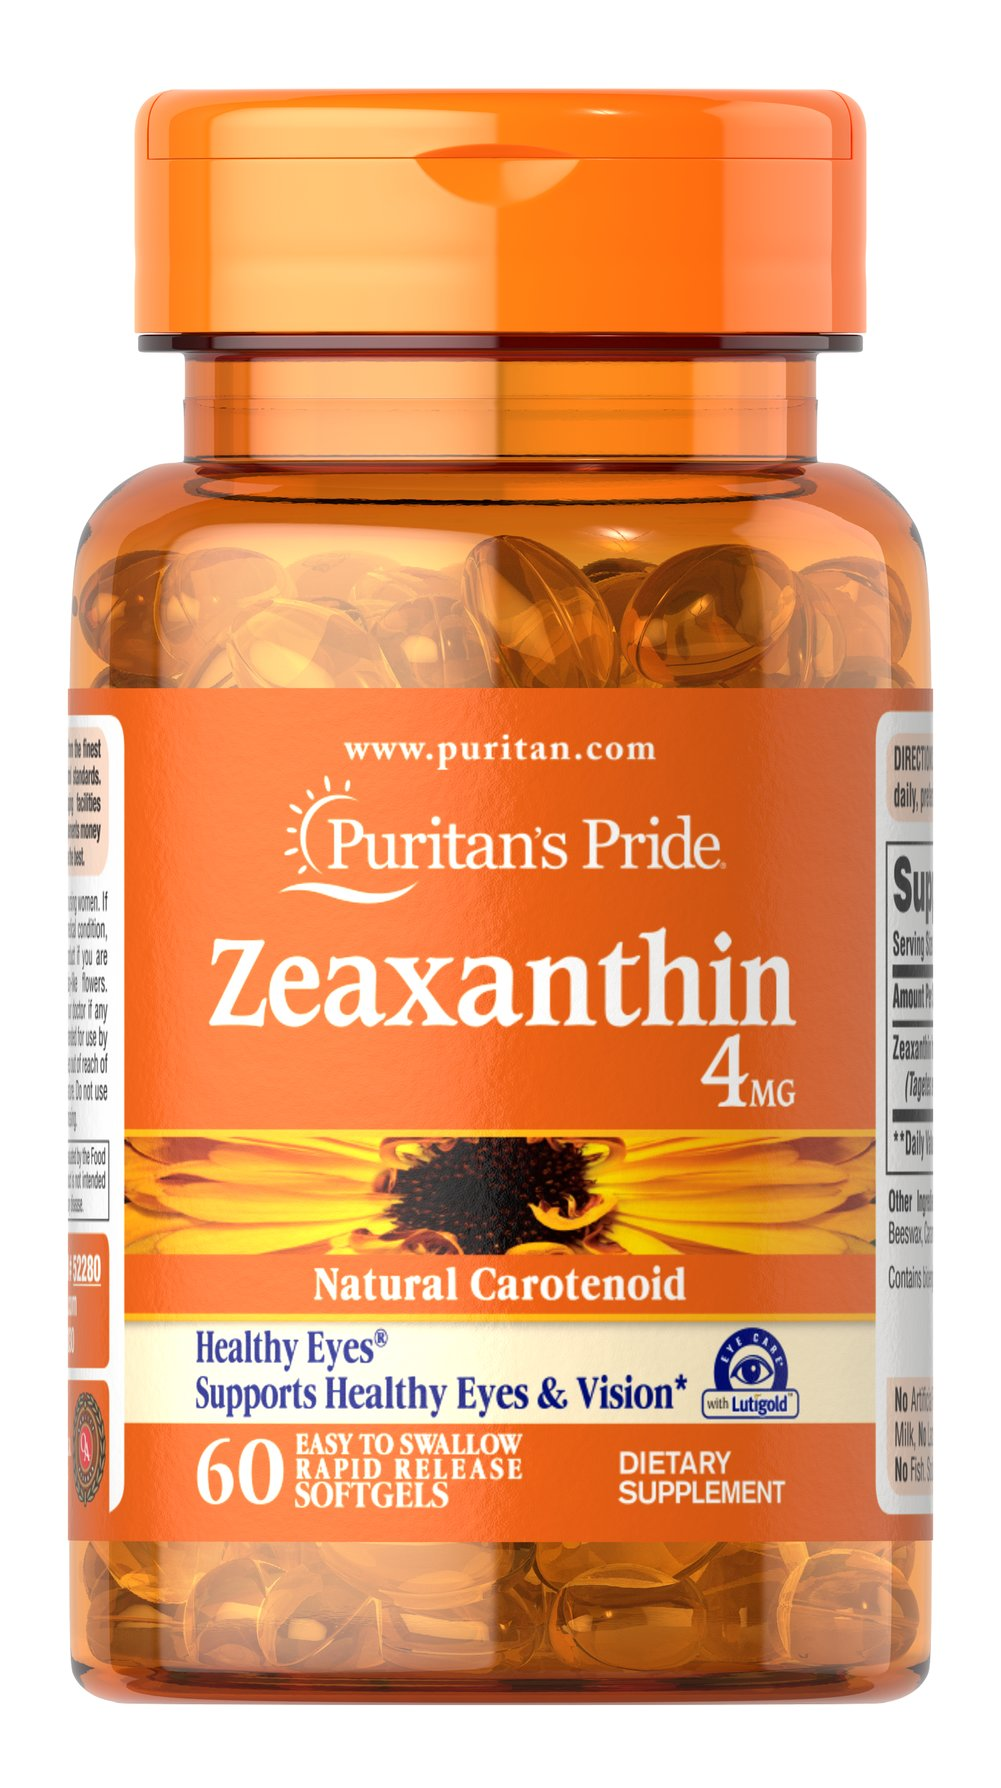 Zeaxanthin 4 mg Thumbnail Alternate Bottle View